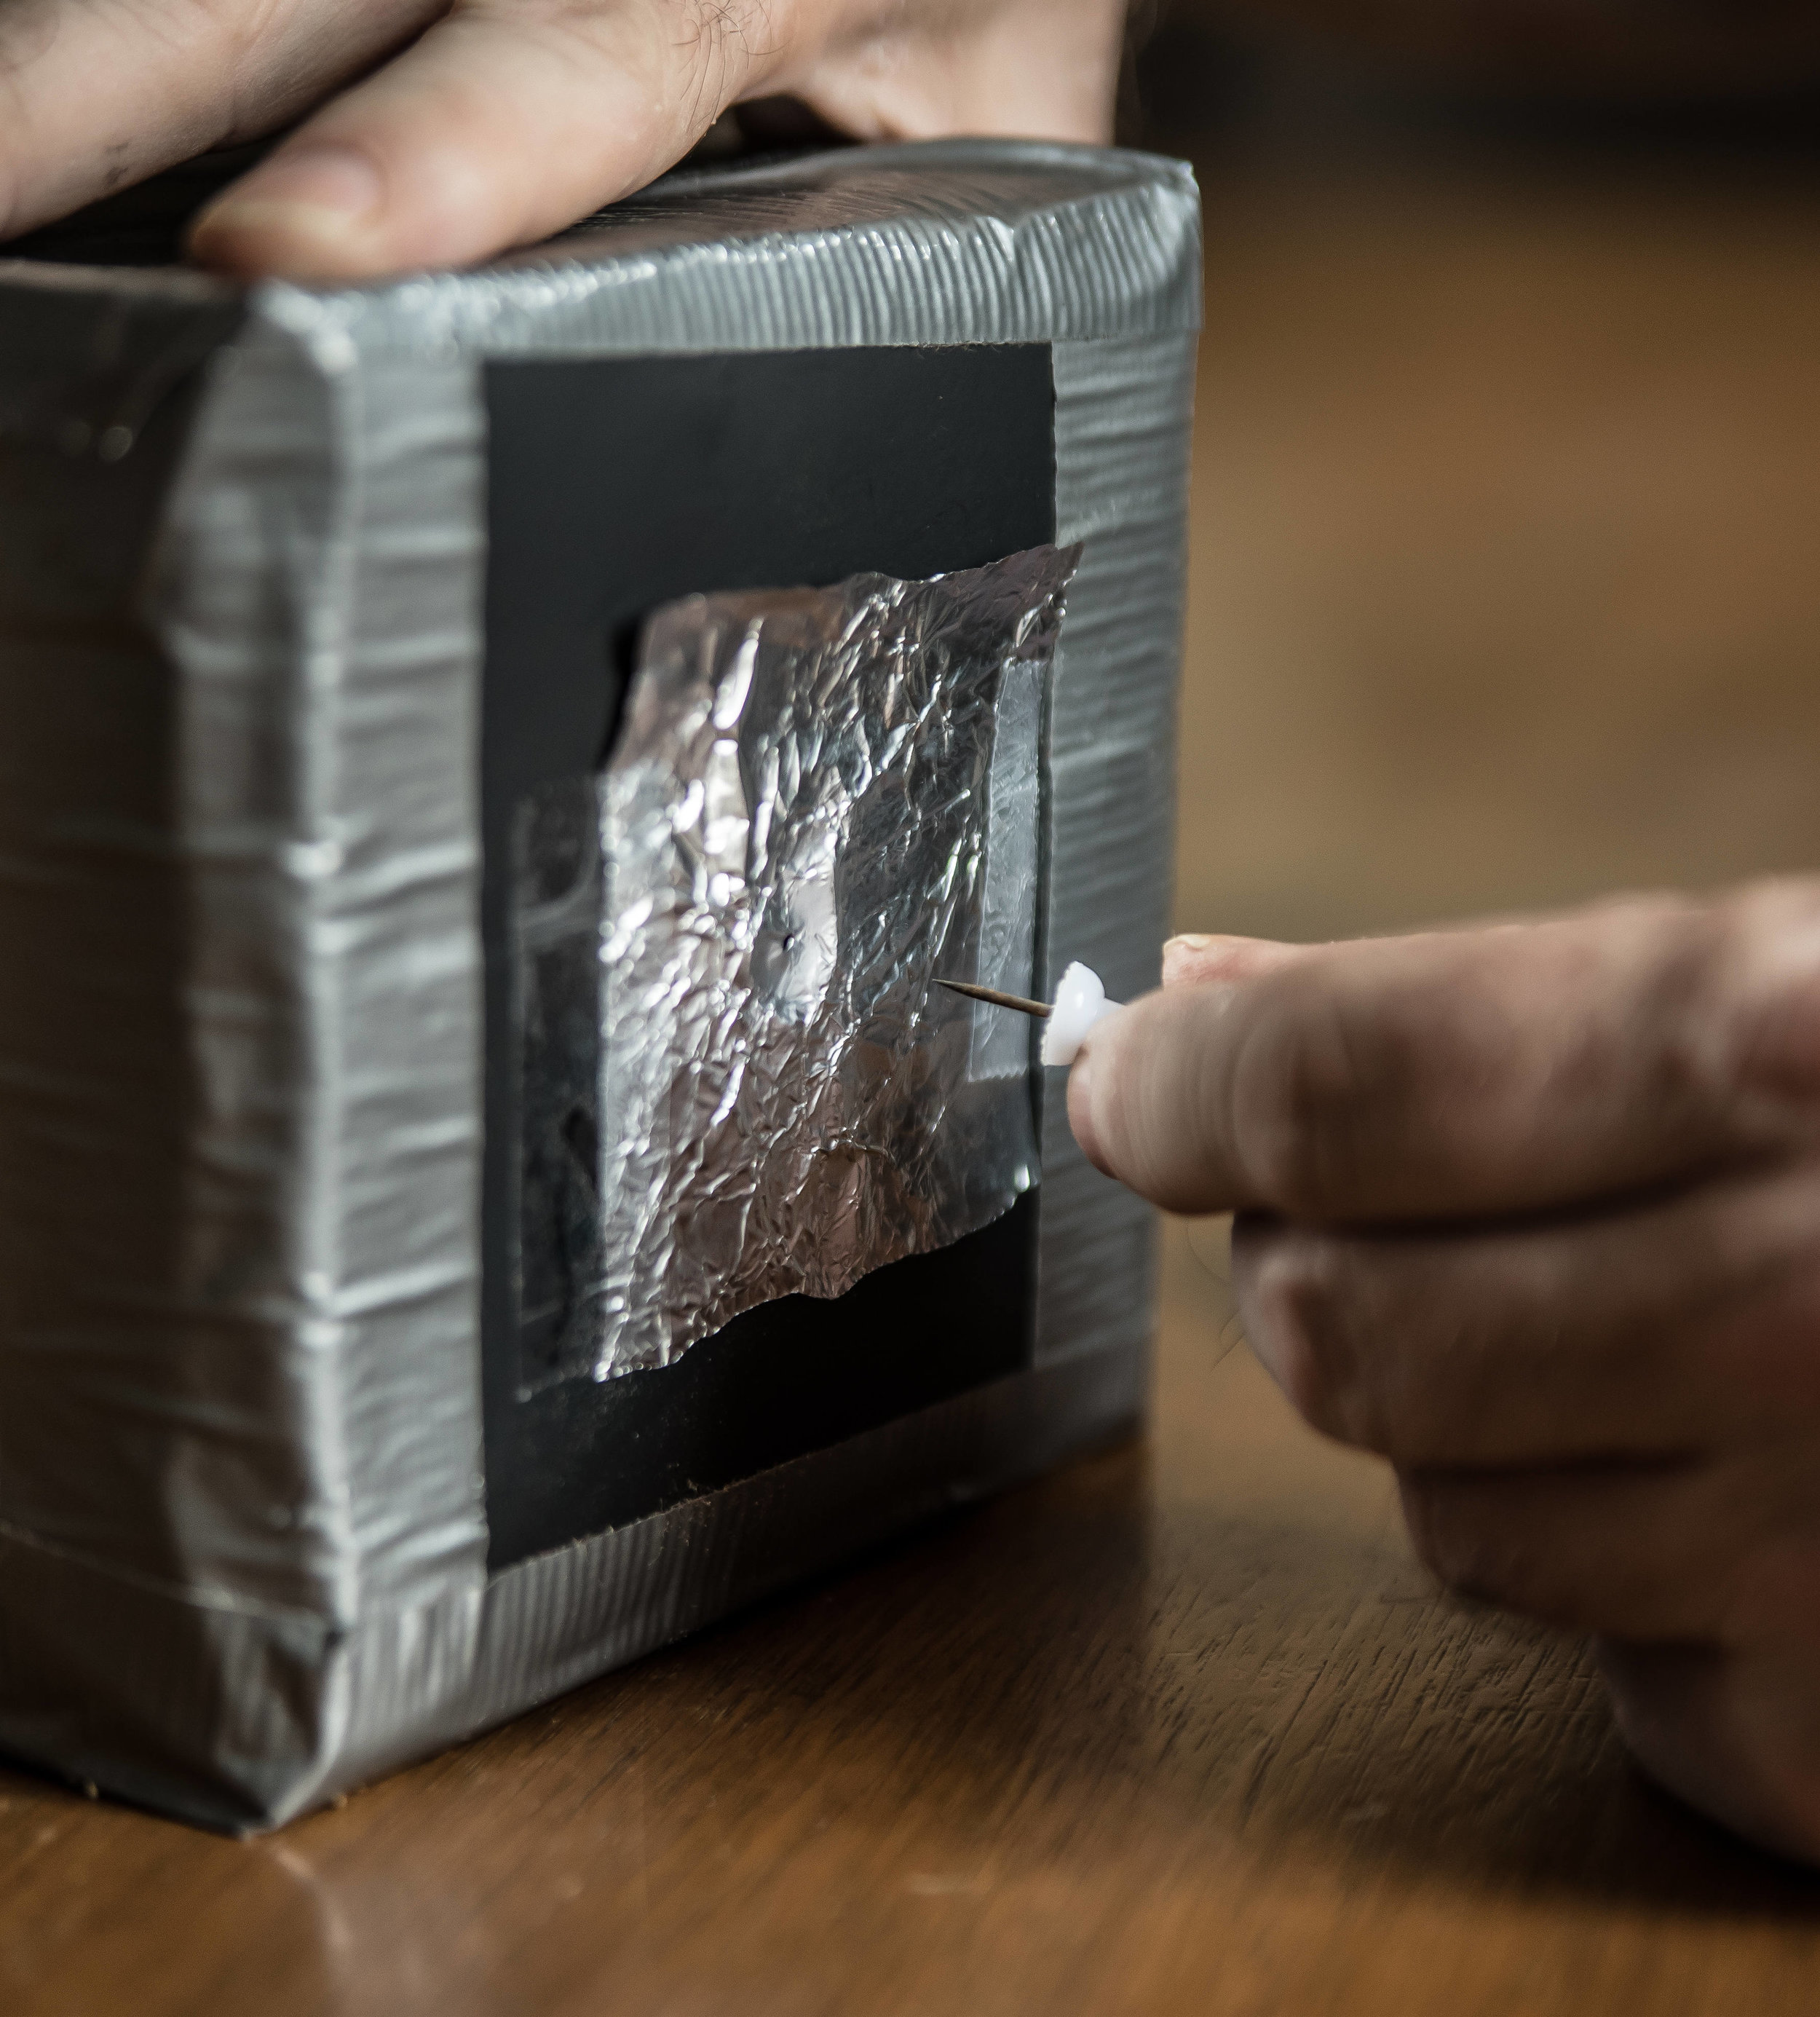 Tape foil over the hole you just made. Then, make a new small hole with a safety pin.